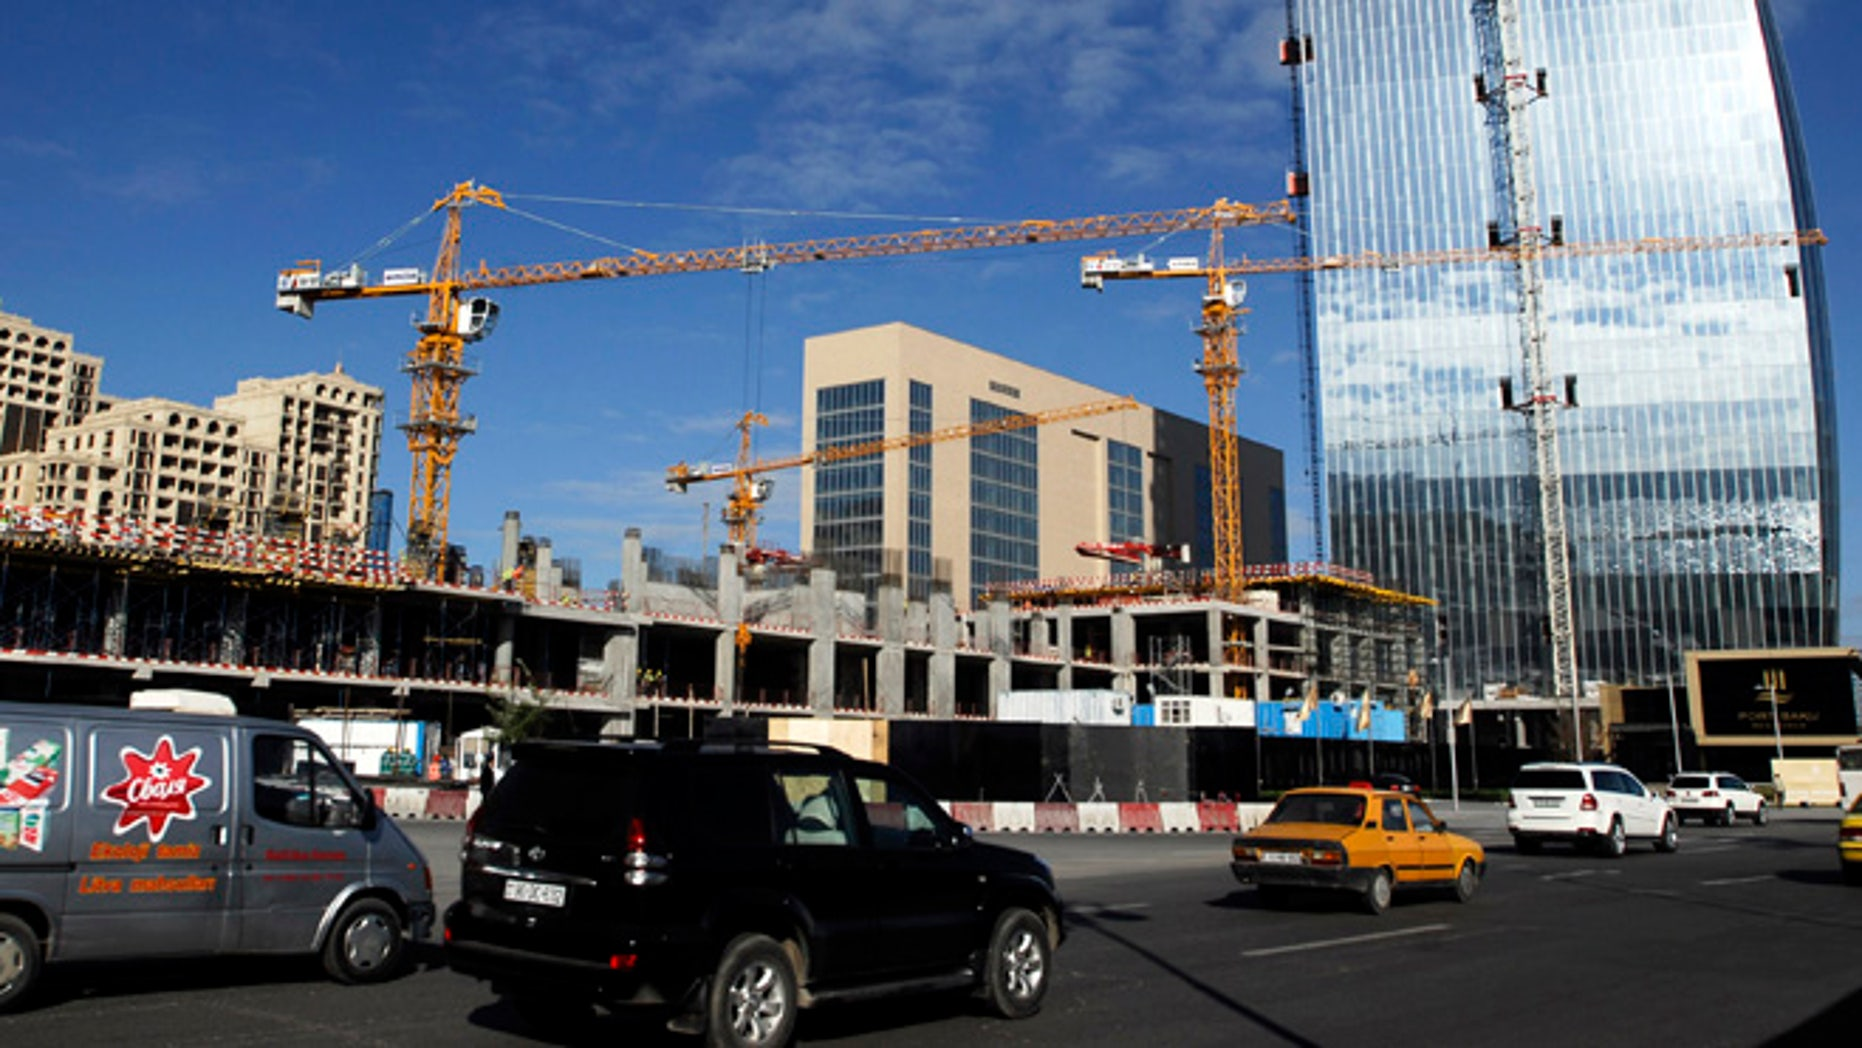 Nov. 3, 2012: Cars drive past buildings which are under construction in Azerbaijan's capital Baku.